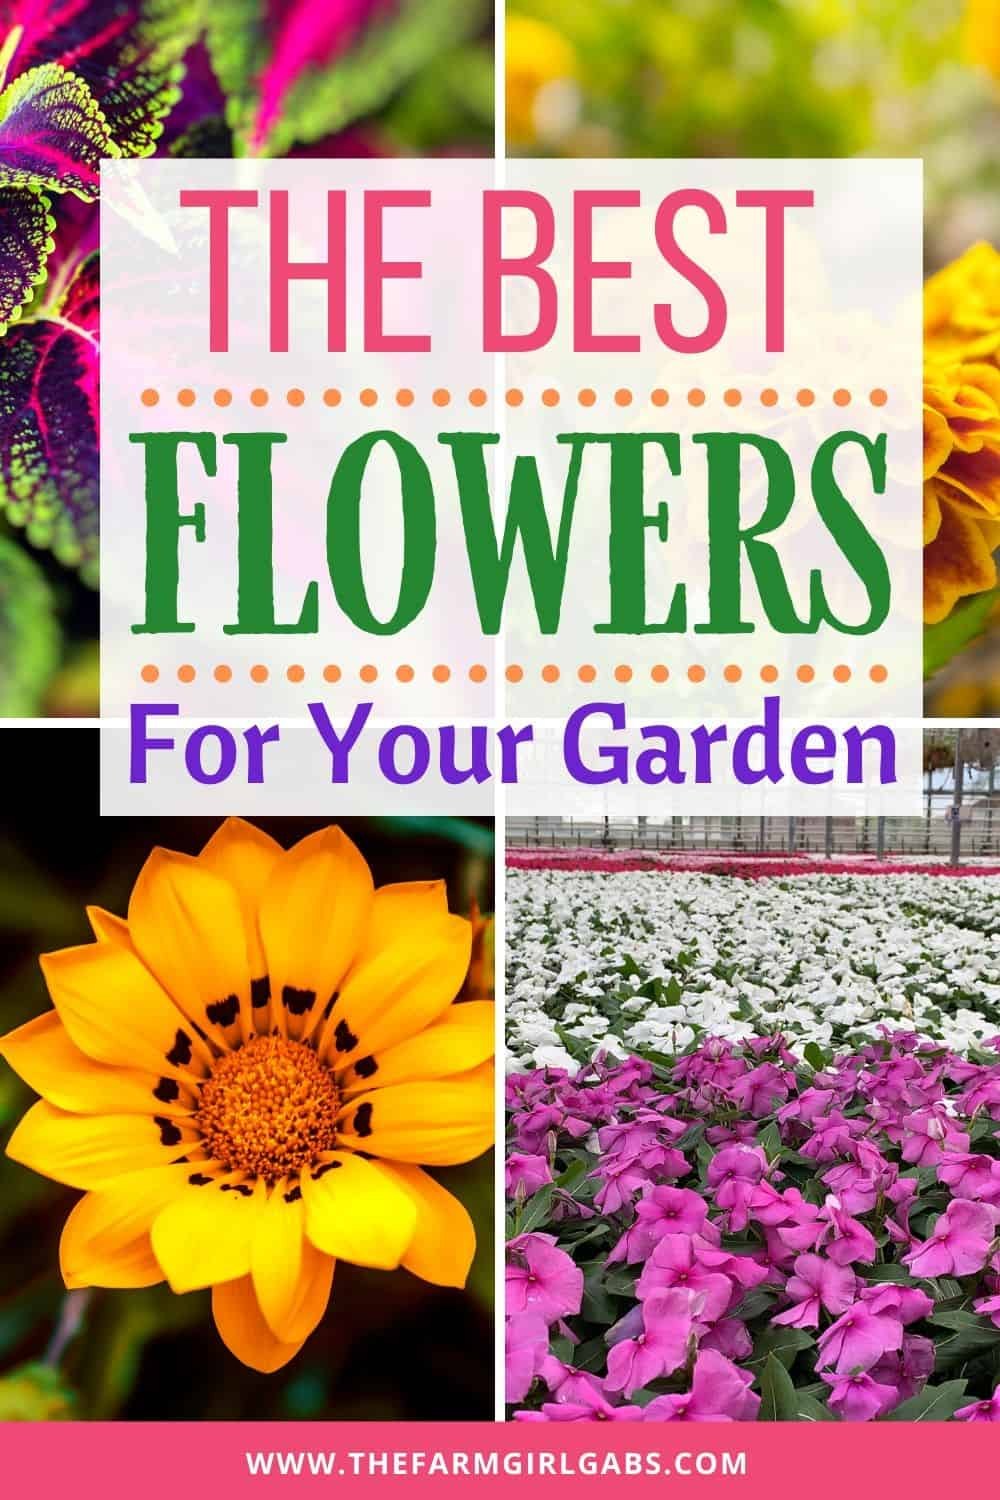 Get your gardens growing. Celebrate spring with these helpful gardening tips. Here is the Ultimate List of Popular Flowers for your Flower Garden. #Gardeningtips #Gardening #Flowers #SpringGardening #FlowerGarden